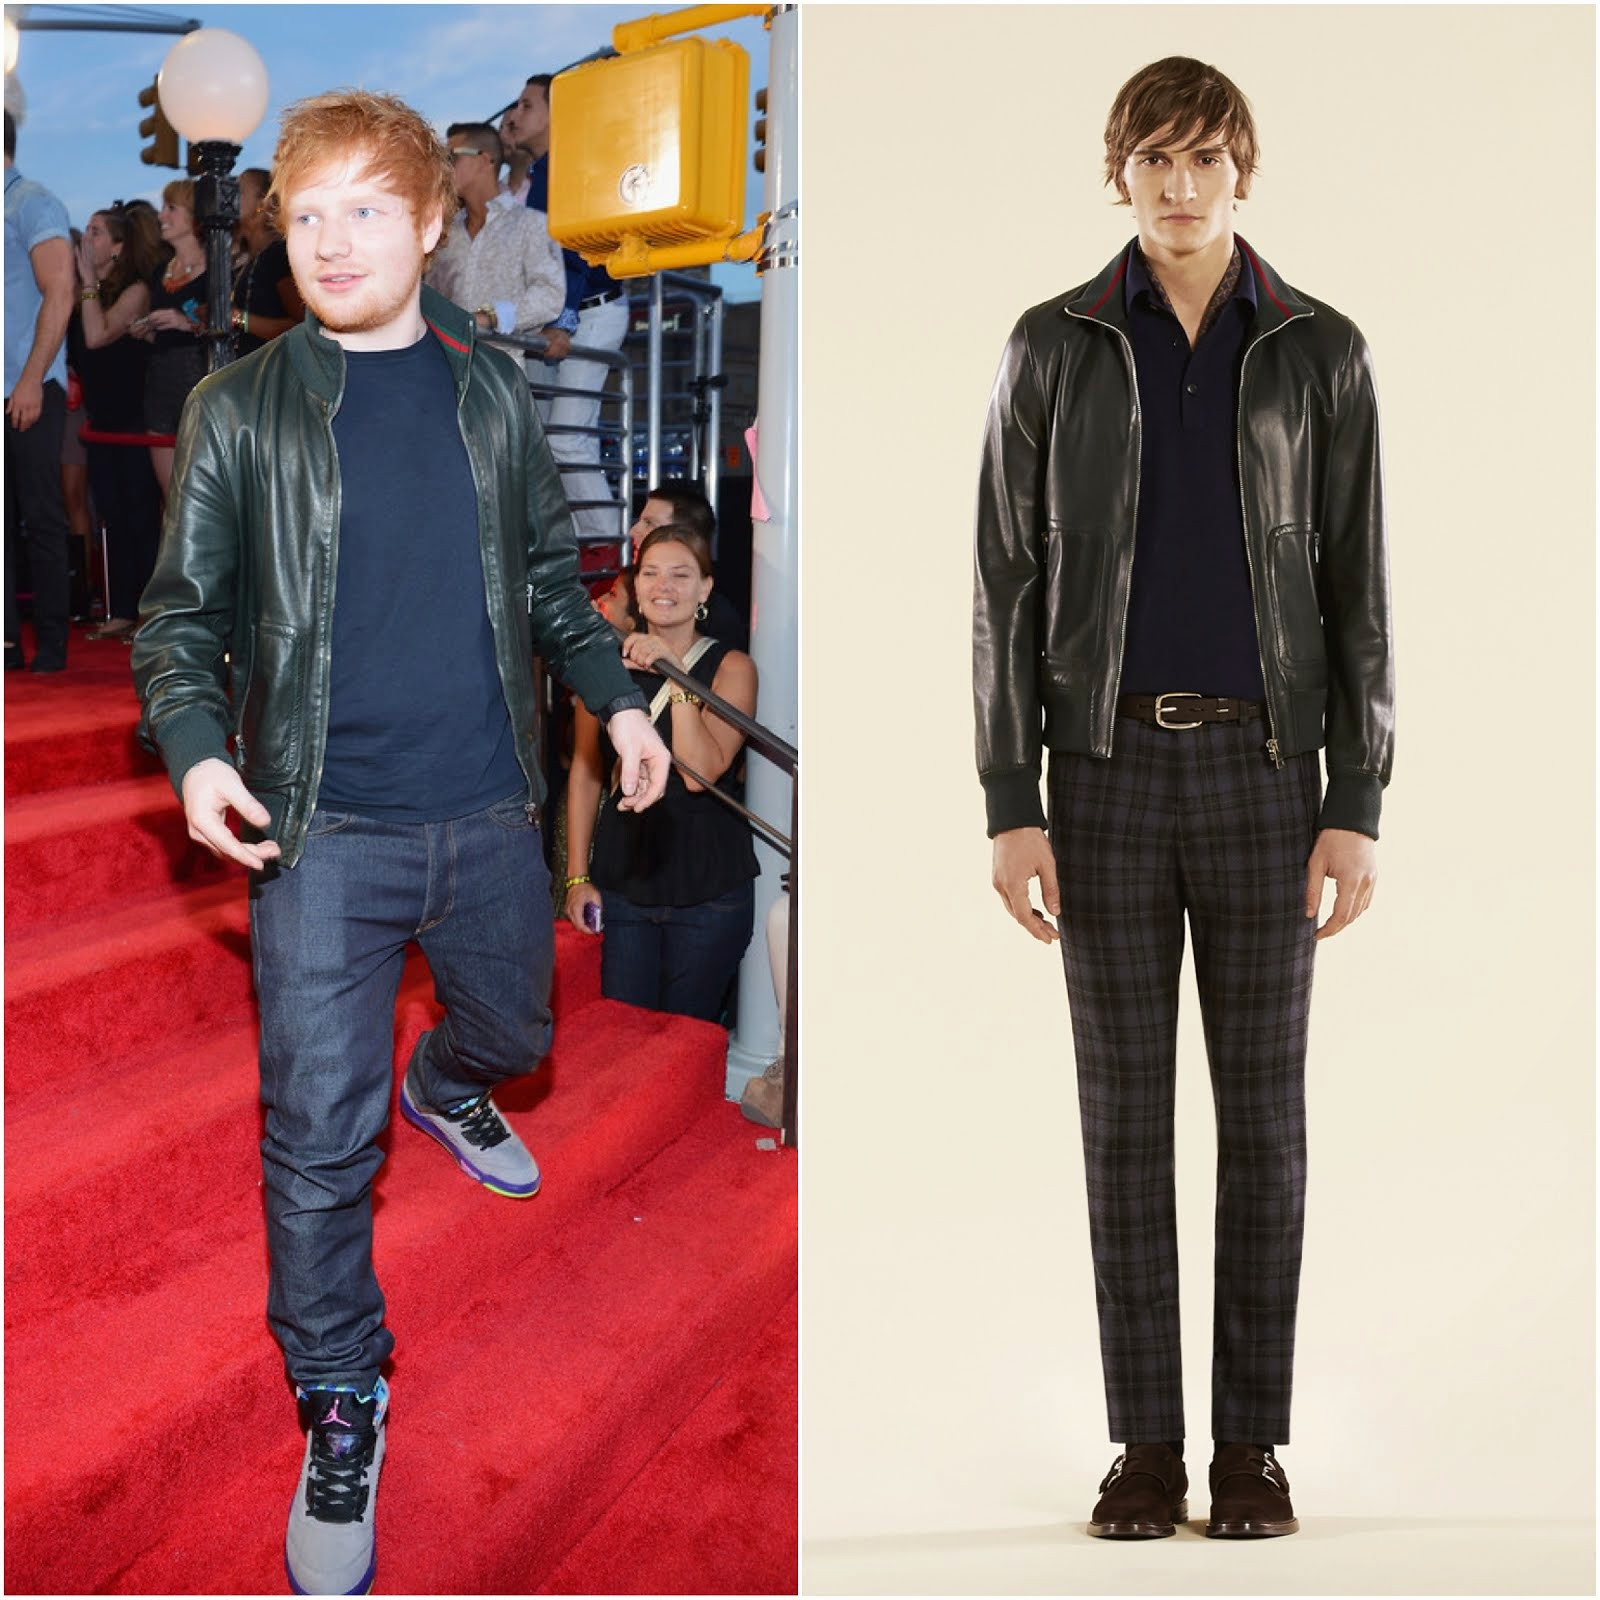 00O00 Menswear blog: Ed Sheeran's dark green plonge Gucci leather bomber jacket - 2013 MTV Video Music Awards